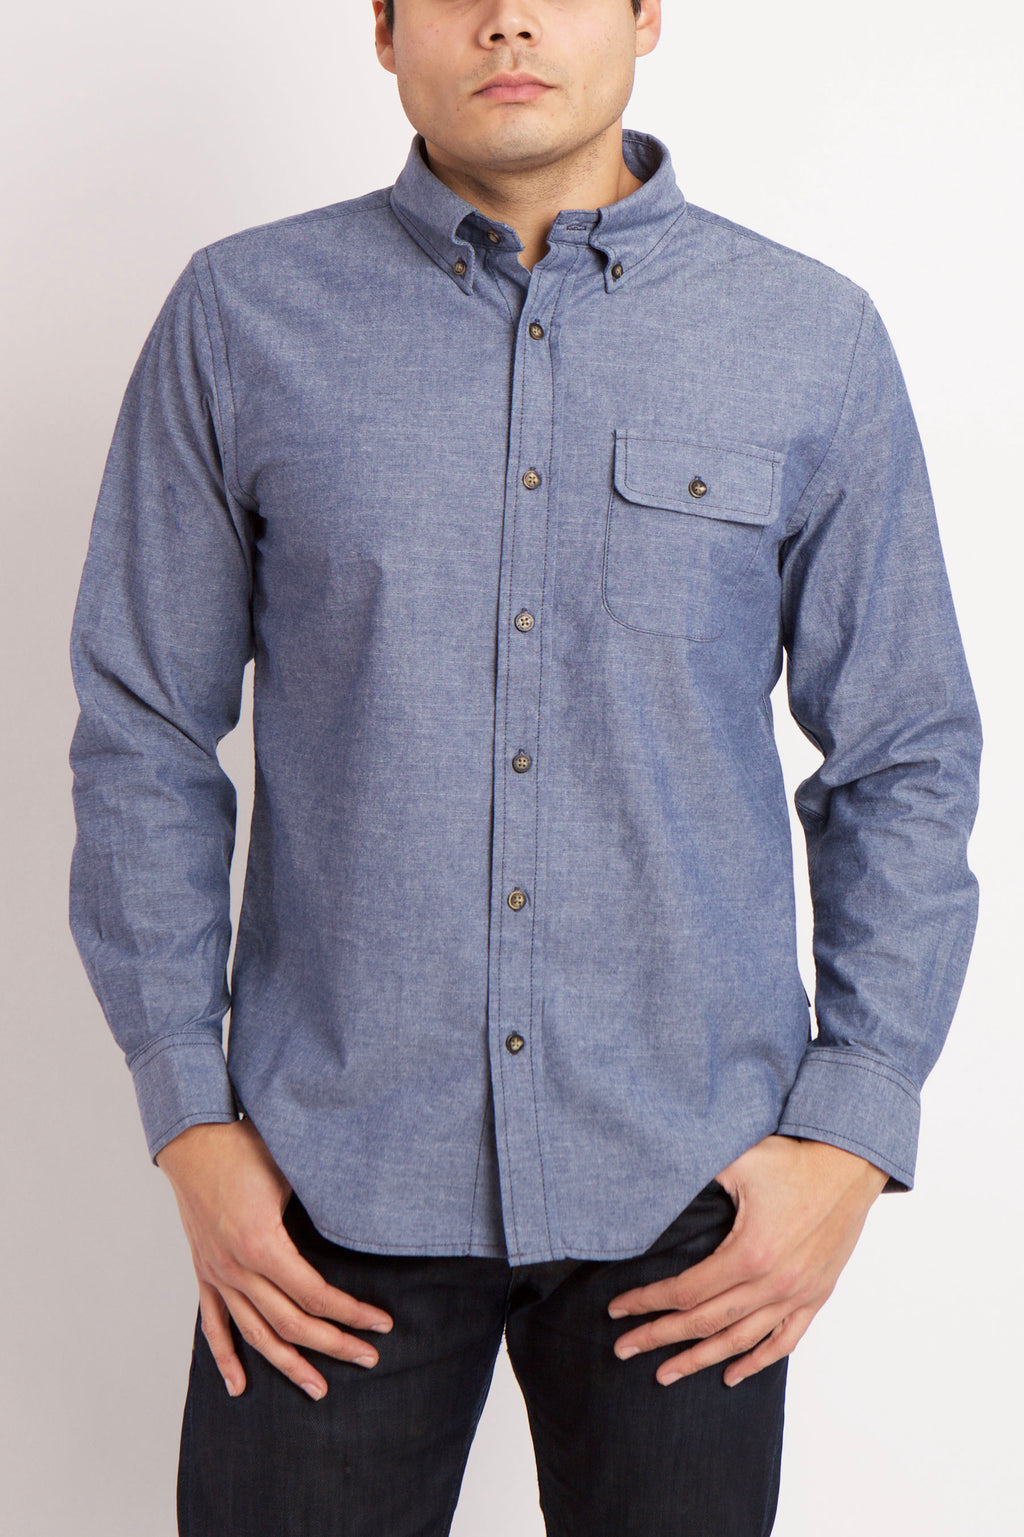 DURHAM WOVEN SHIRT BLUE M - BROOKLYN INDUSTRIES